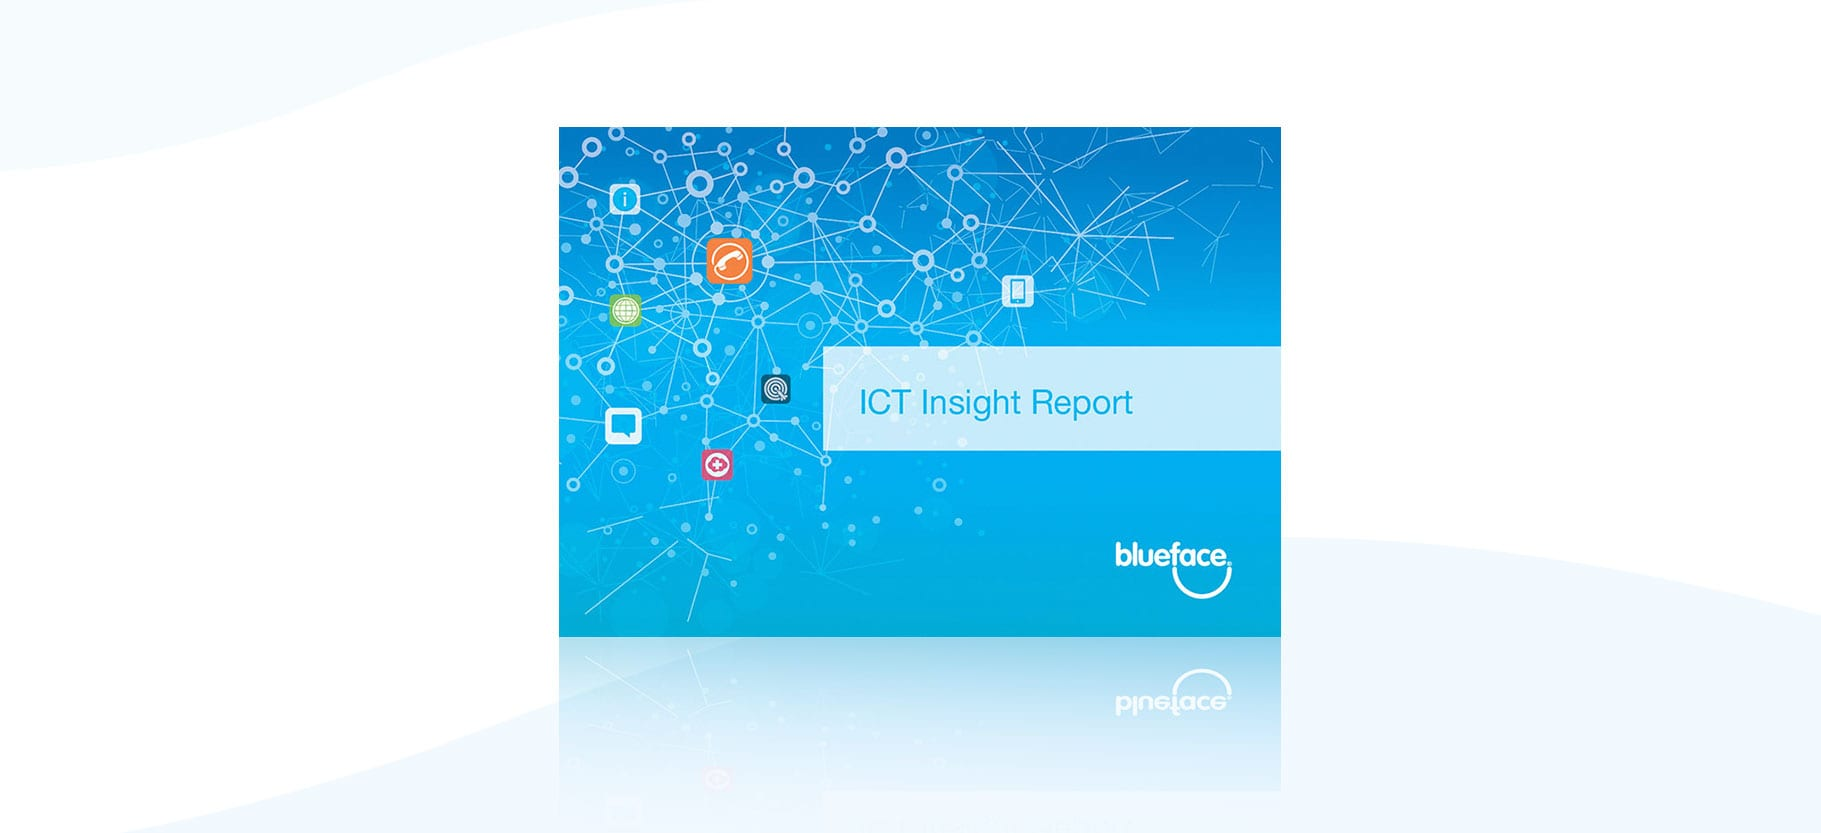 Over 65% of Irish Businesses believe they are paying too much for Telephony – Blueface Survey